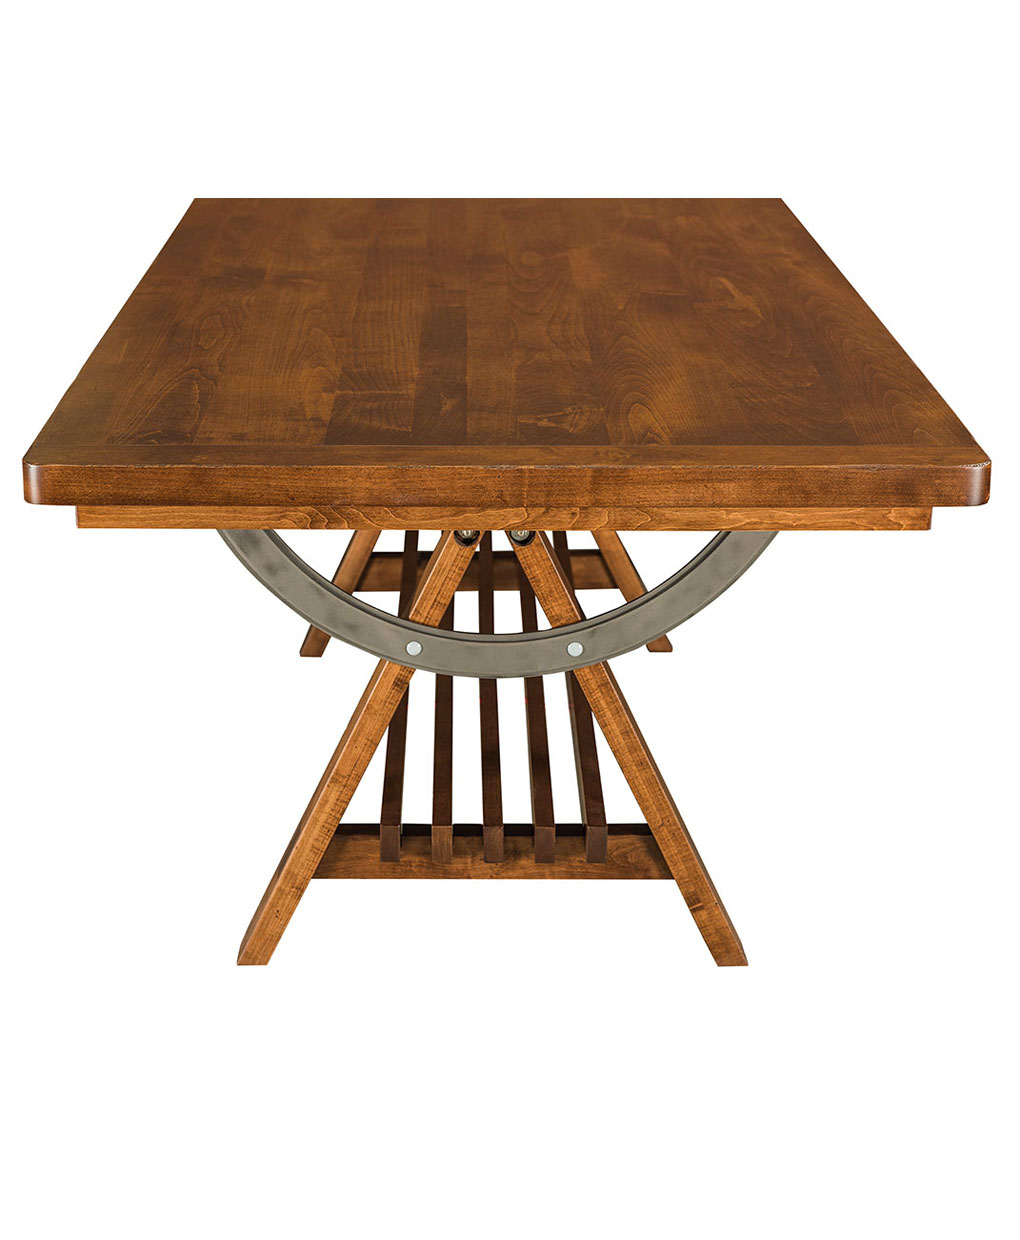 Trestle Table Size Standard Images What Is The